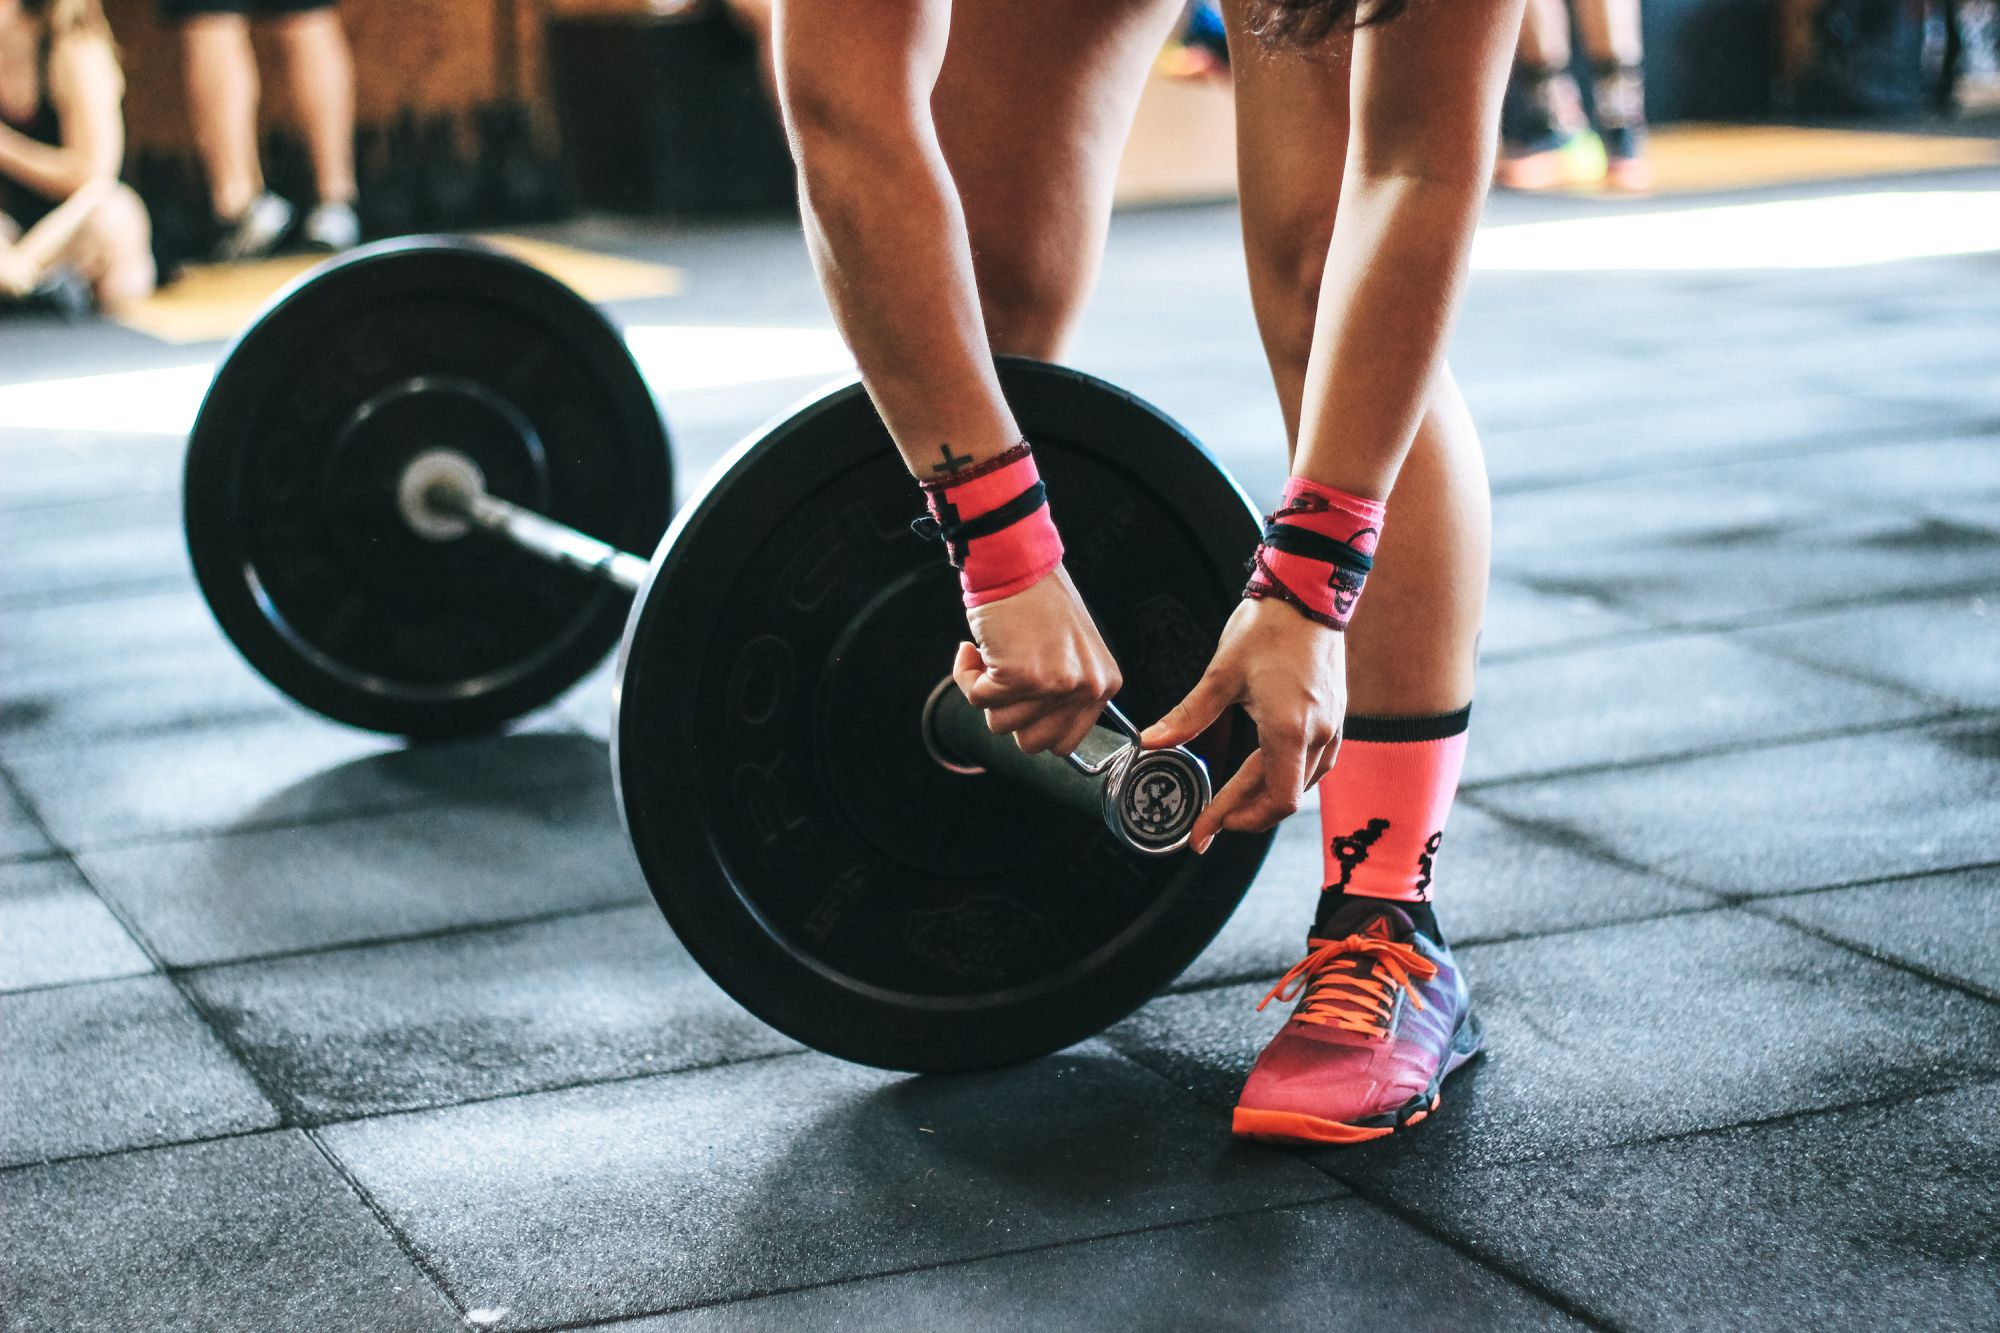 Girls Who Lift: 3 Myths Debunked By Personal Trainers